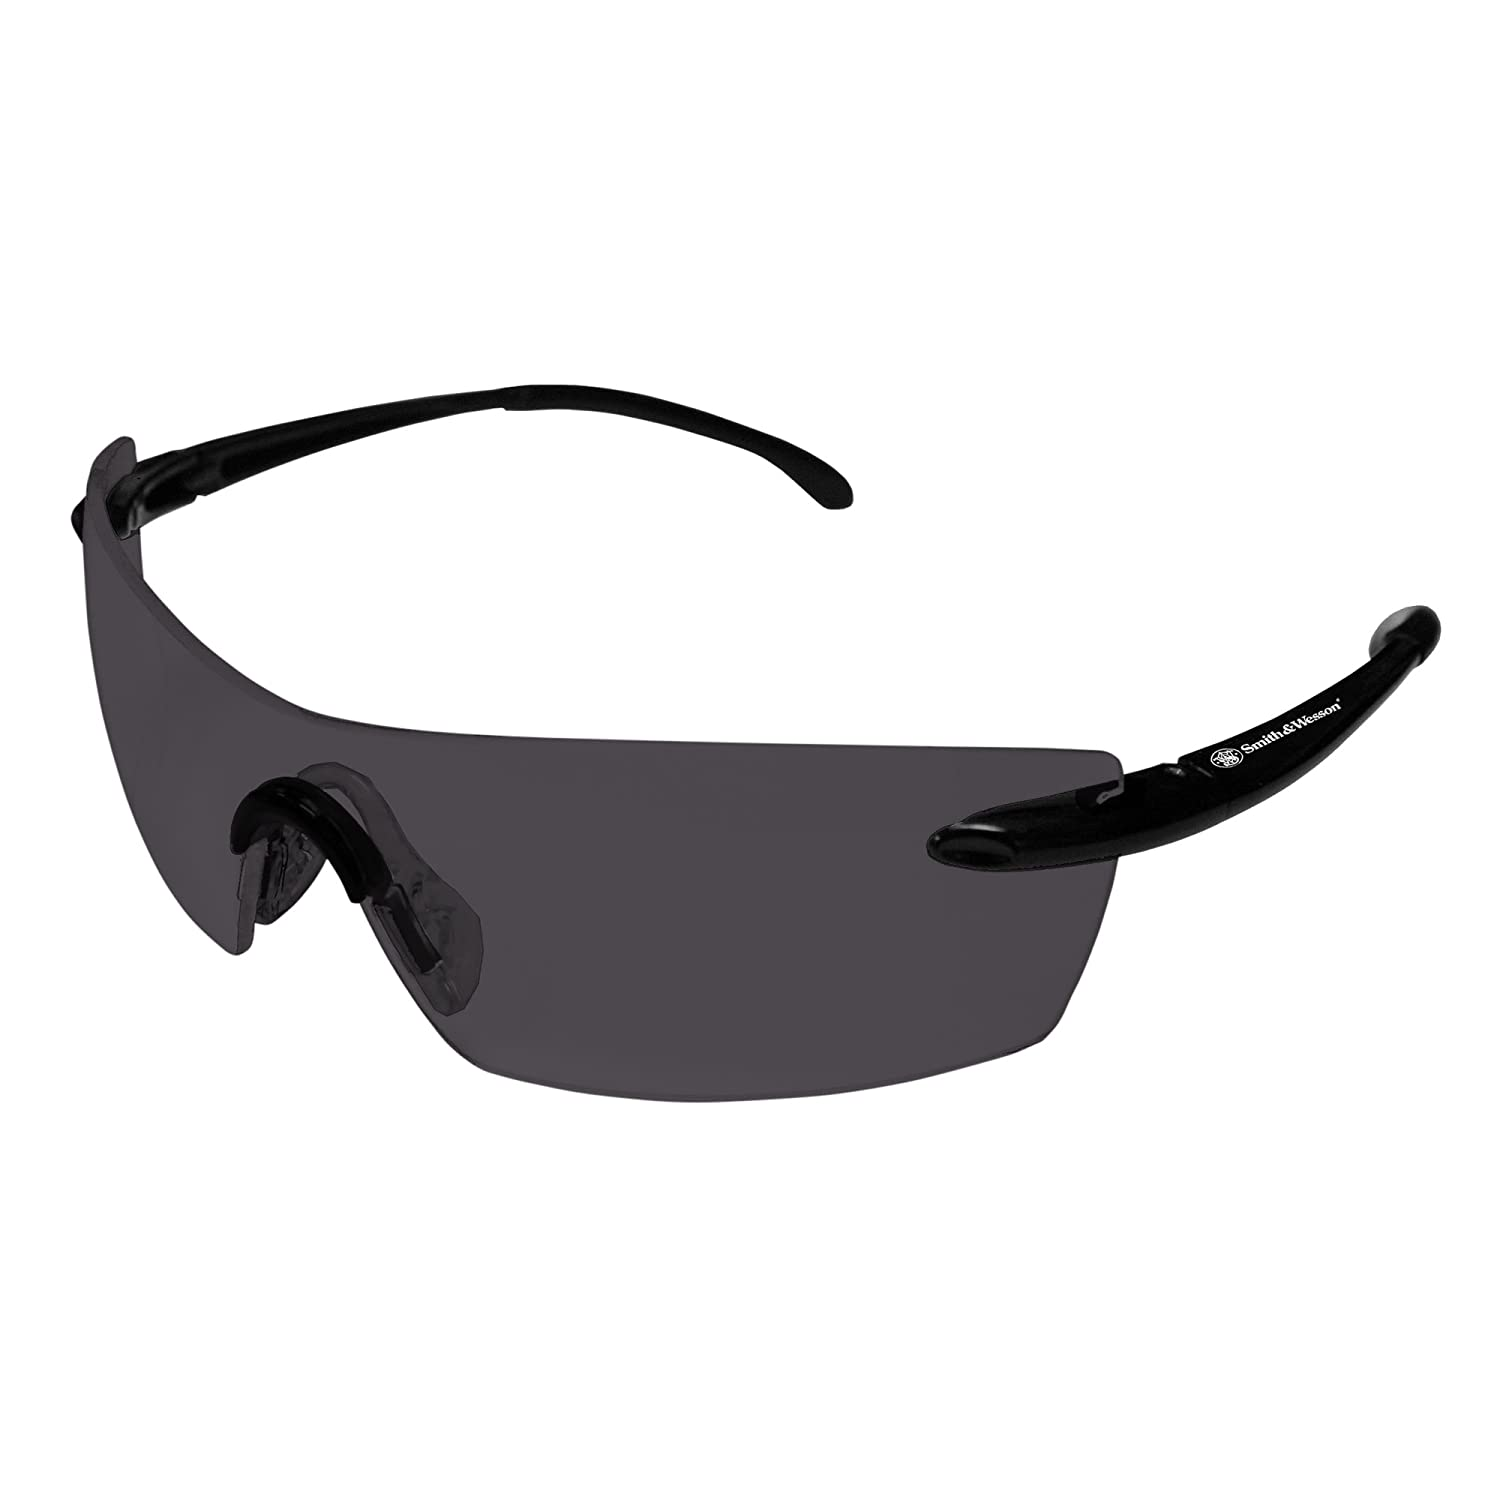 Smith & Wesson 20350 Sigma Safety Glasses, Clear Lenses with Gunmetal Frame by Jackson Safety B00982XT9A